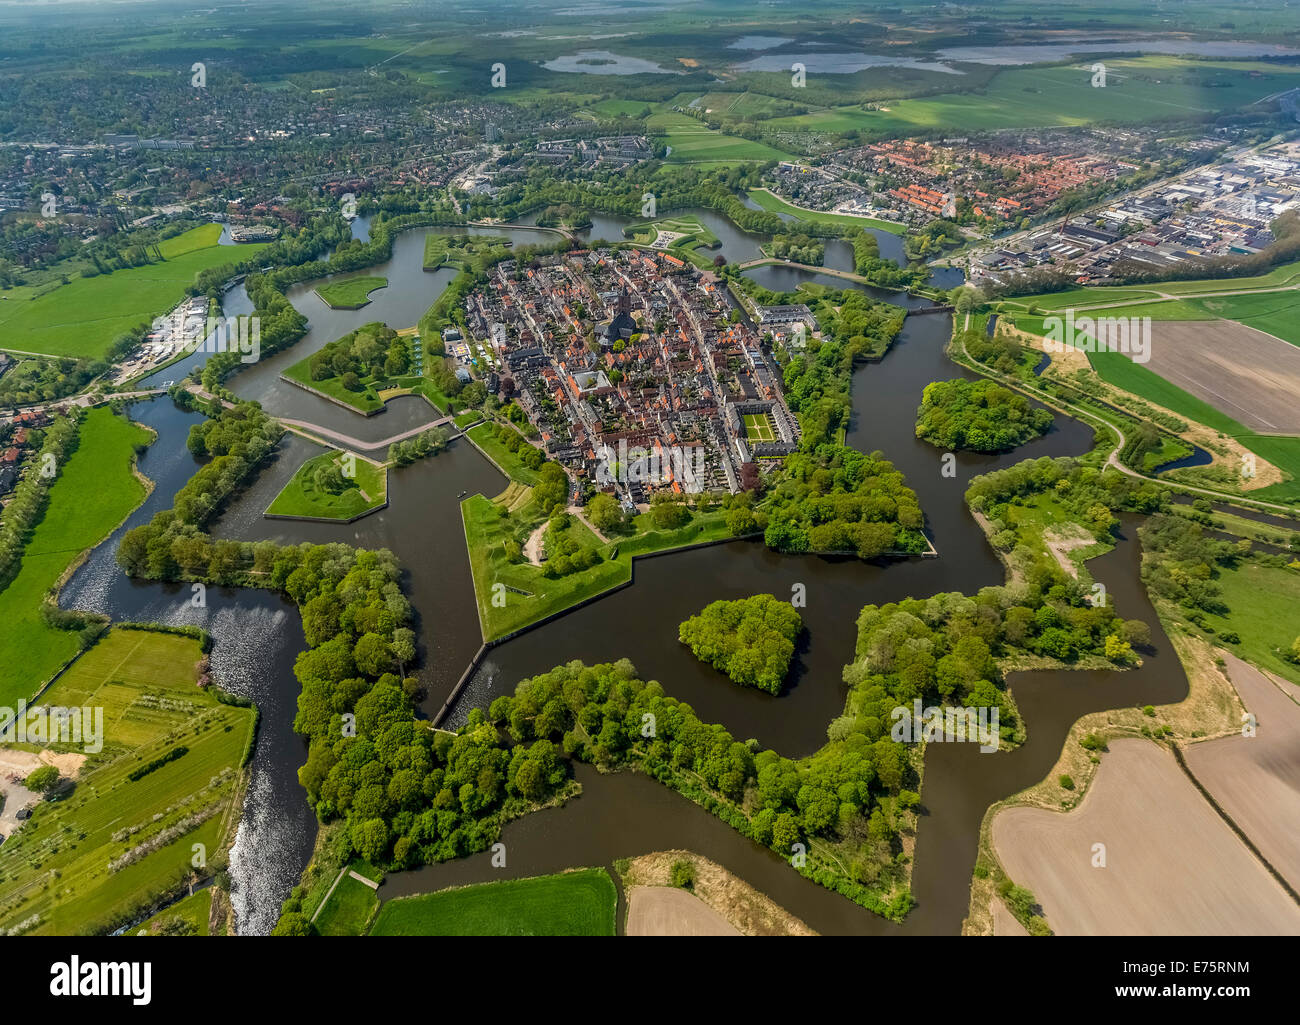 Netherlands Map Of Provinces%0A Naarden Netherlands Map Aerial view Naarden fortified town Province of  NorthHolland Netherlands